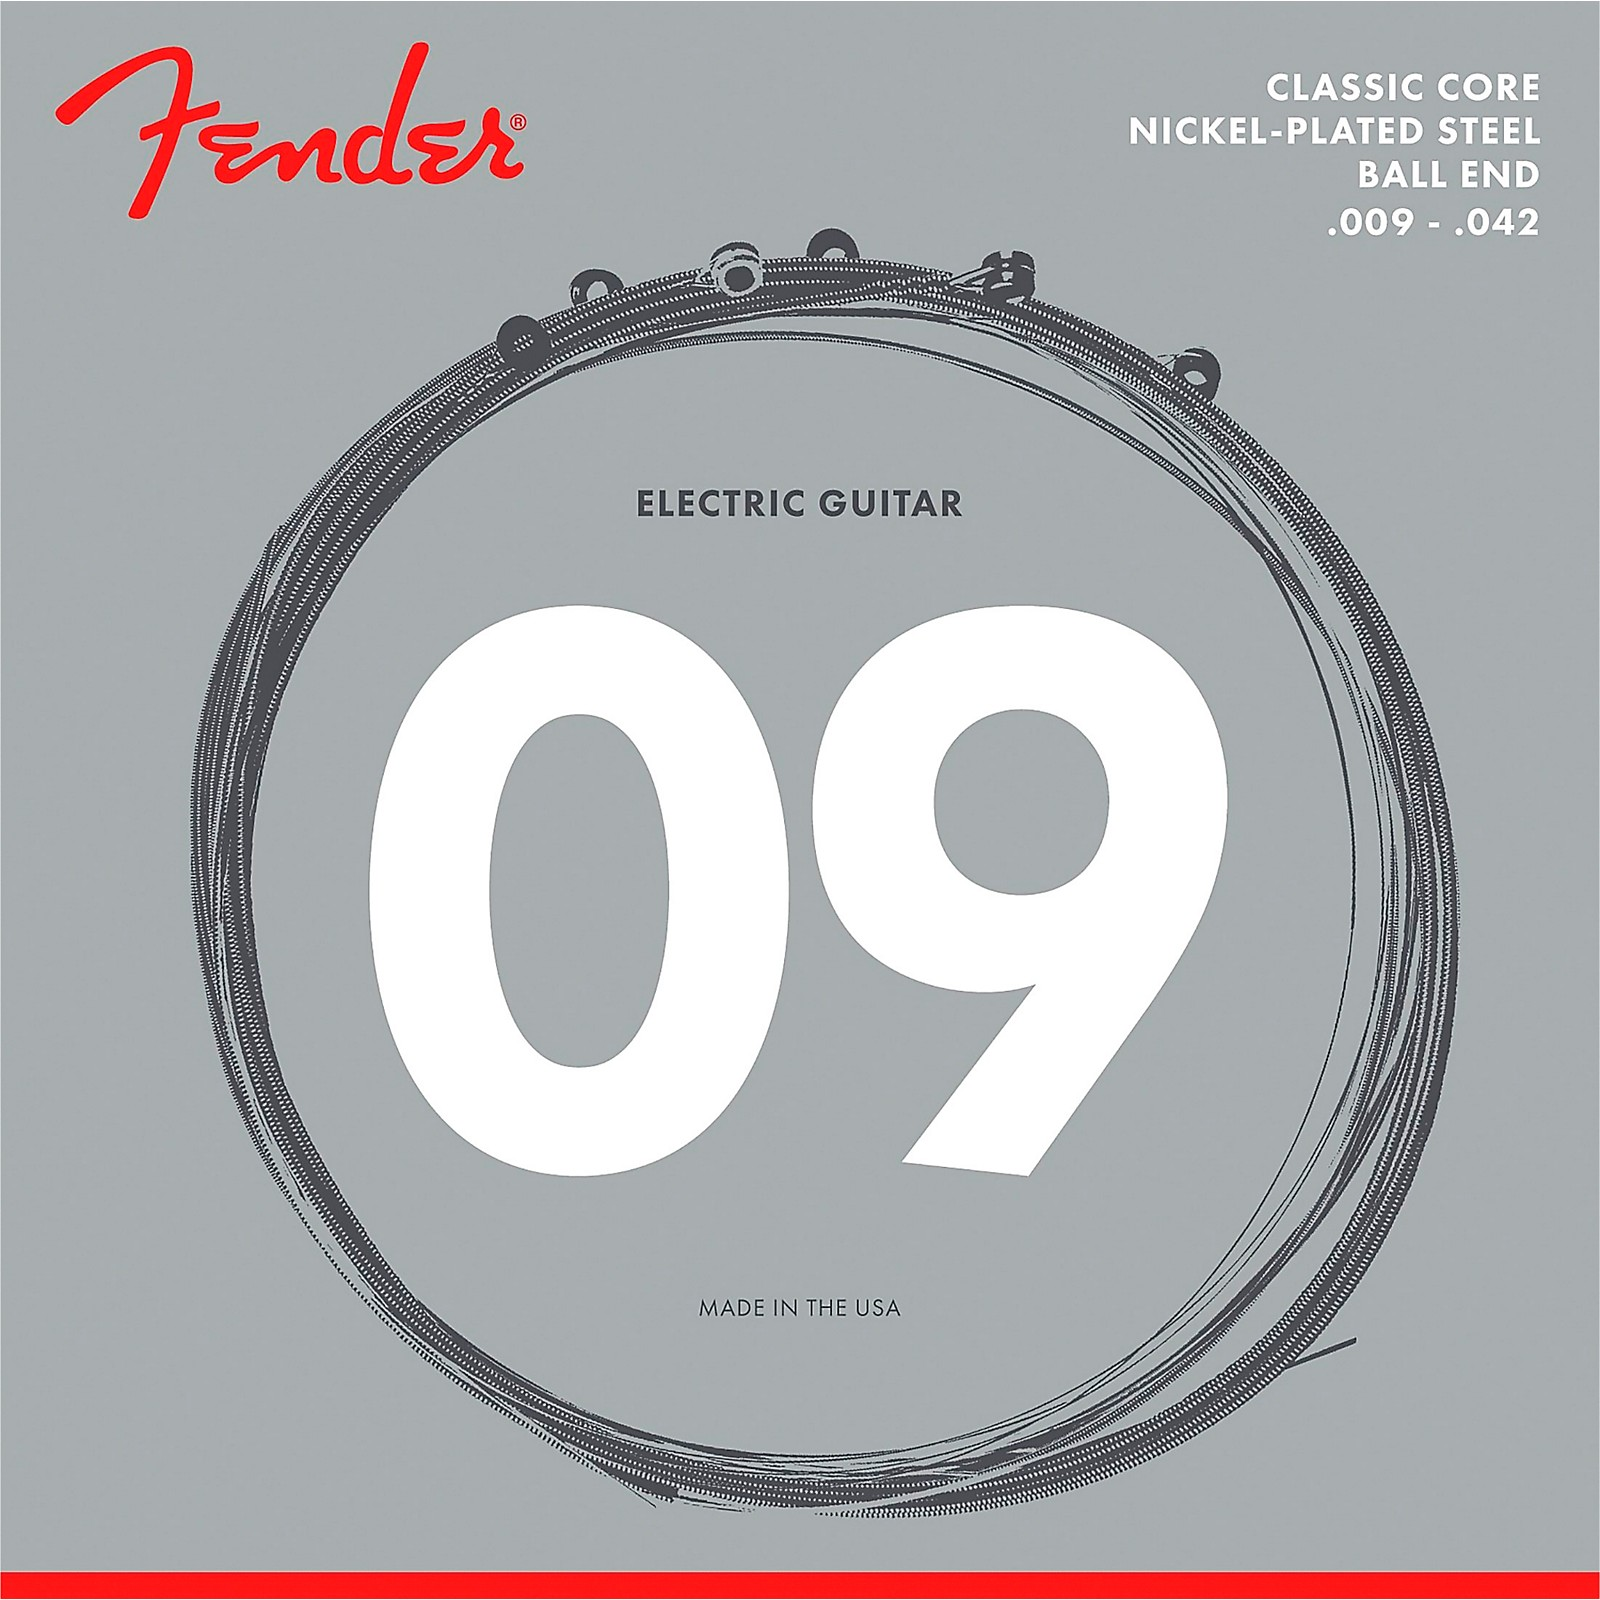 Fender Classic Core 255L Nickel-Plated Steel Ball End Light Guitar Strings